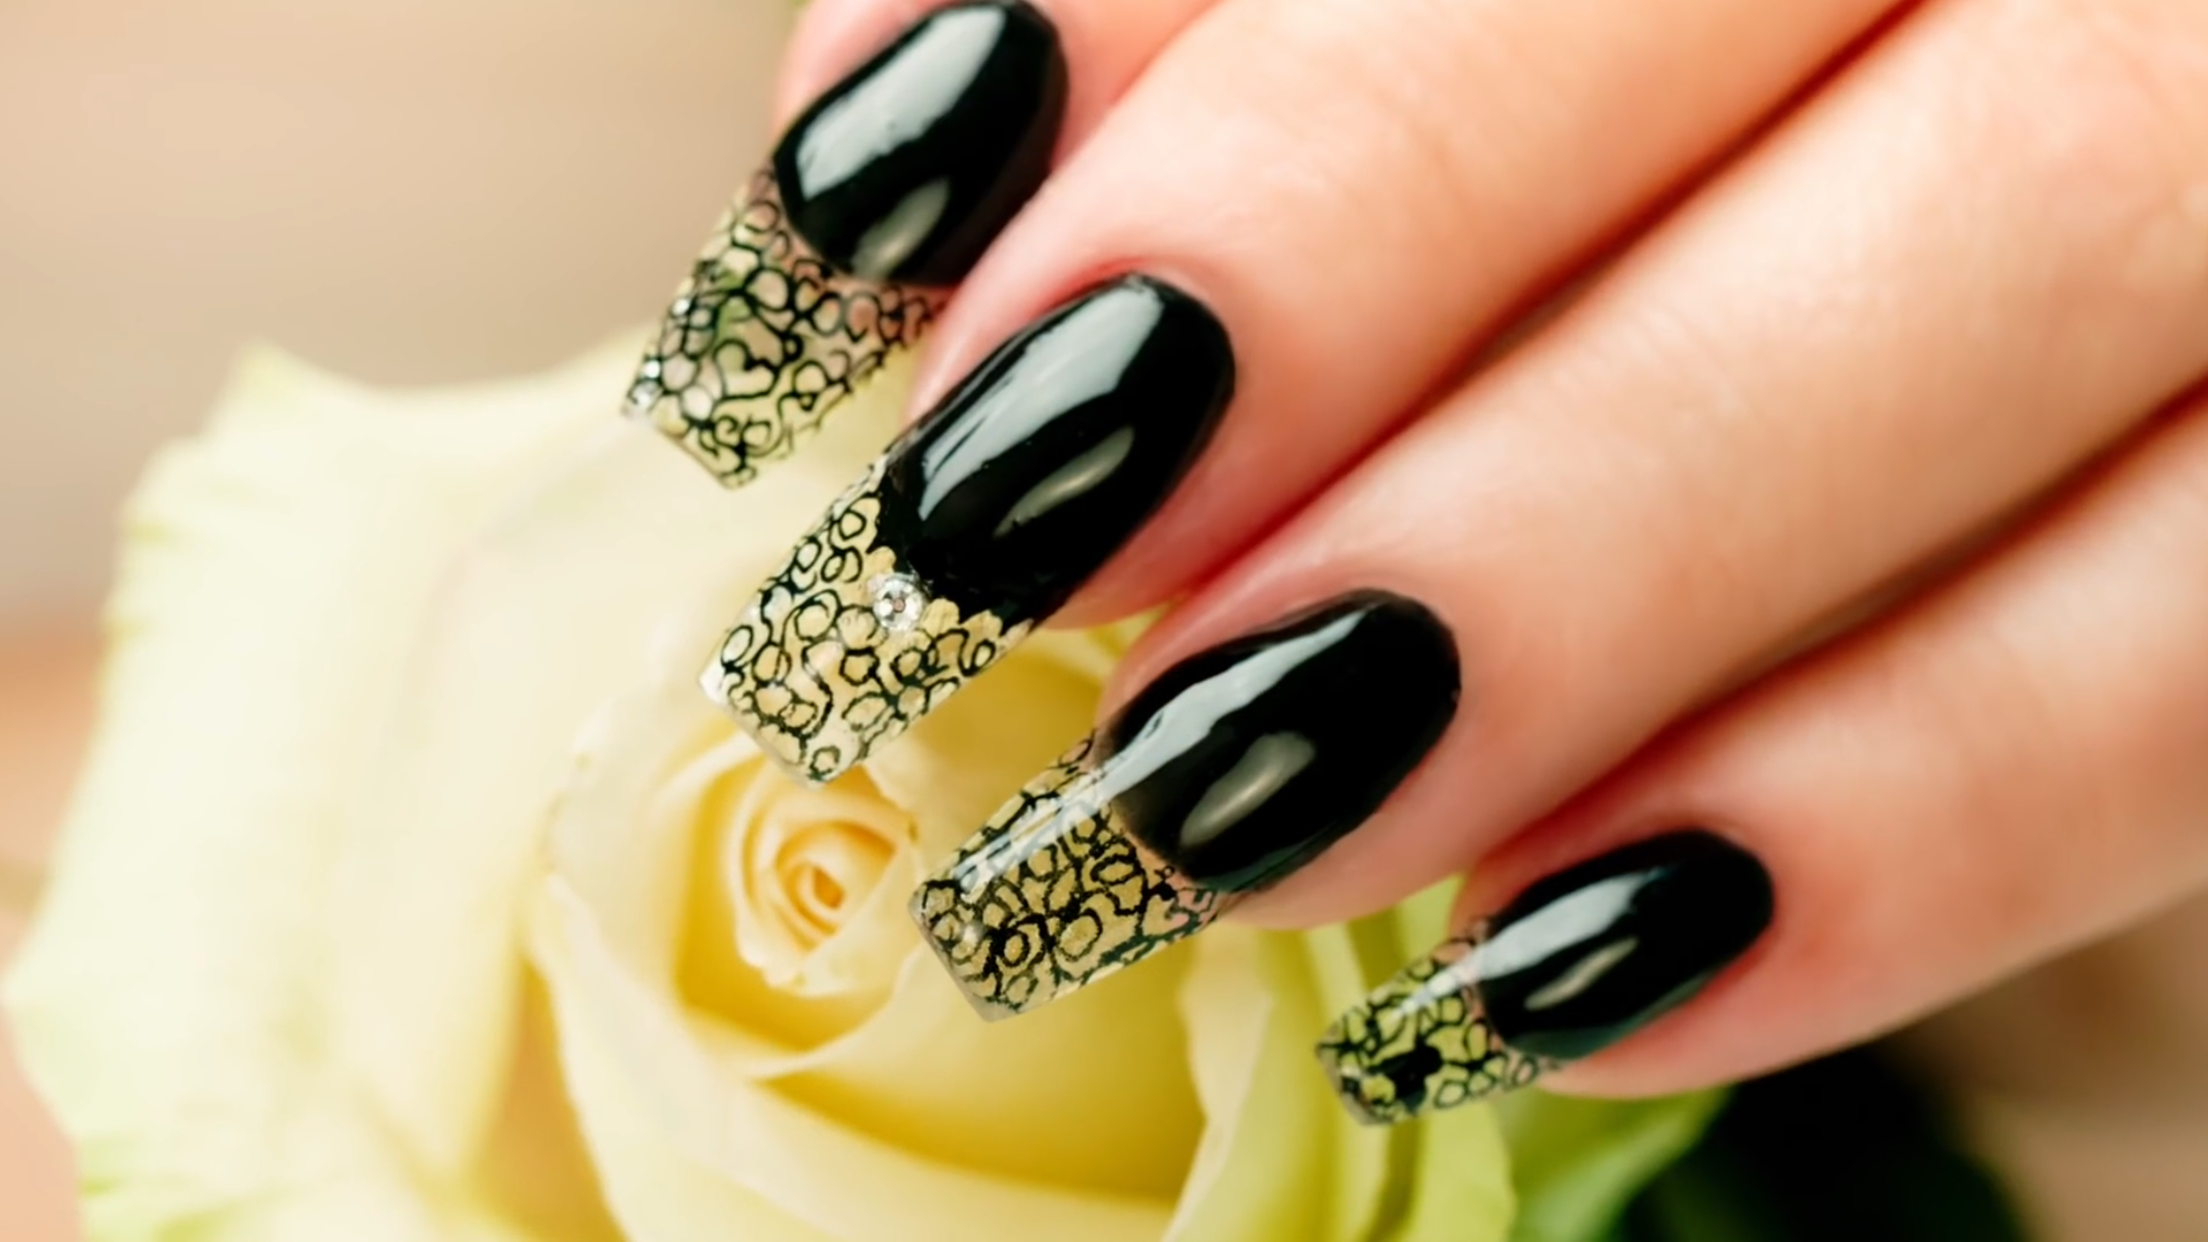 I love this glass acrylic nails by Suzie from nail career education ...